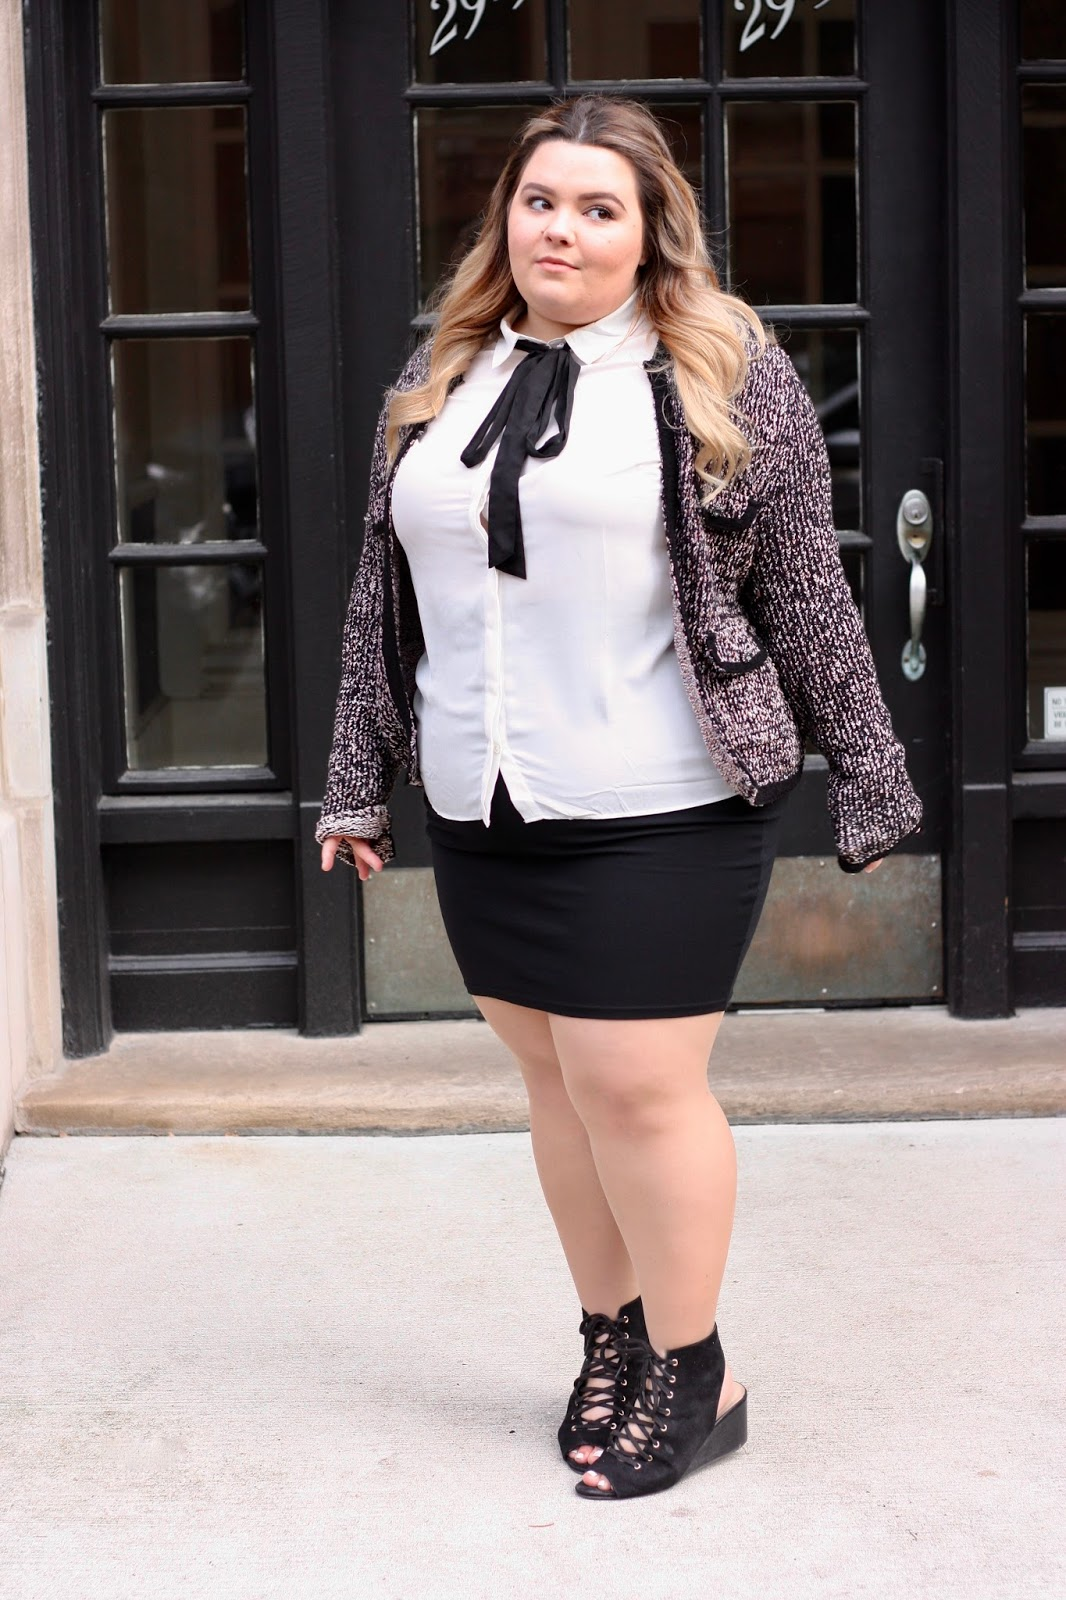 Chanel tweed jacket, Chanel tweed blazer, Zara plus size, natalie in the city, natalie craig, plus size fashion for women, chicago blogger, midwest blogger, fatshion, body positive, preppy plus size, plus size outfits, plus size office attire